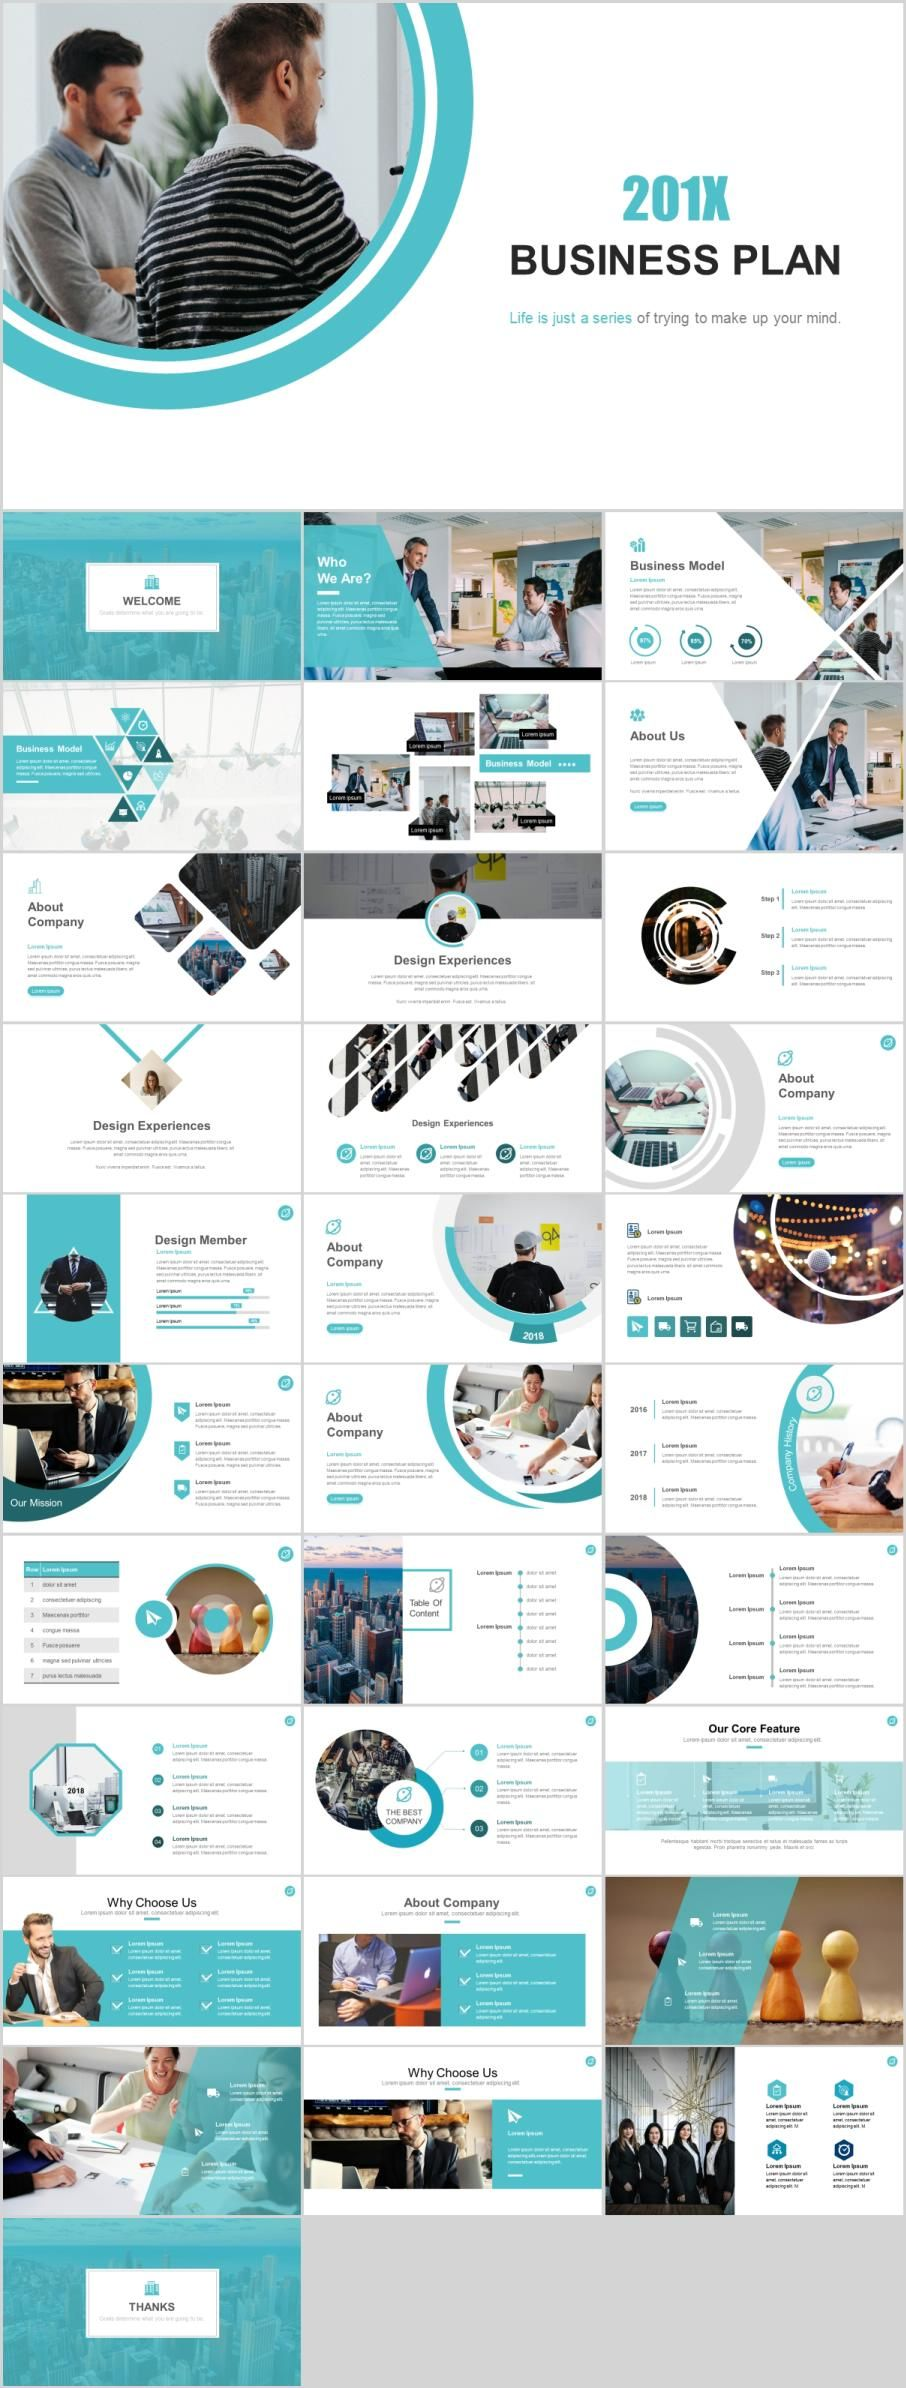 32 business plan blue powerpoint template パワポ参考 pinterest